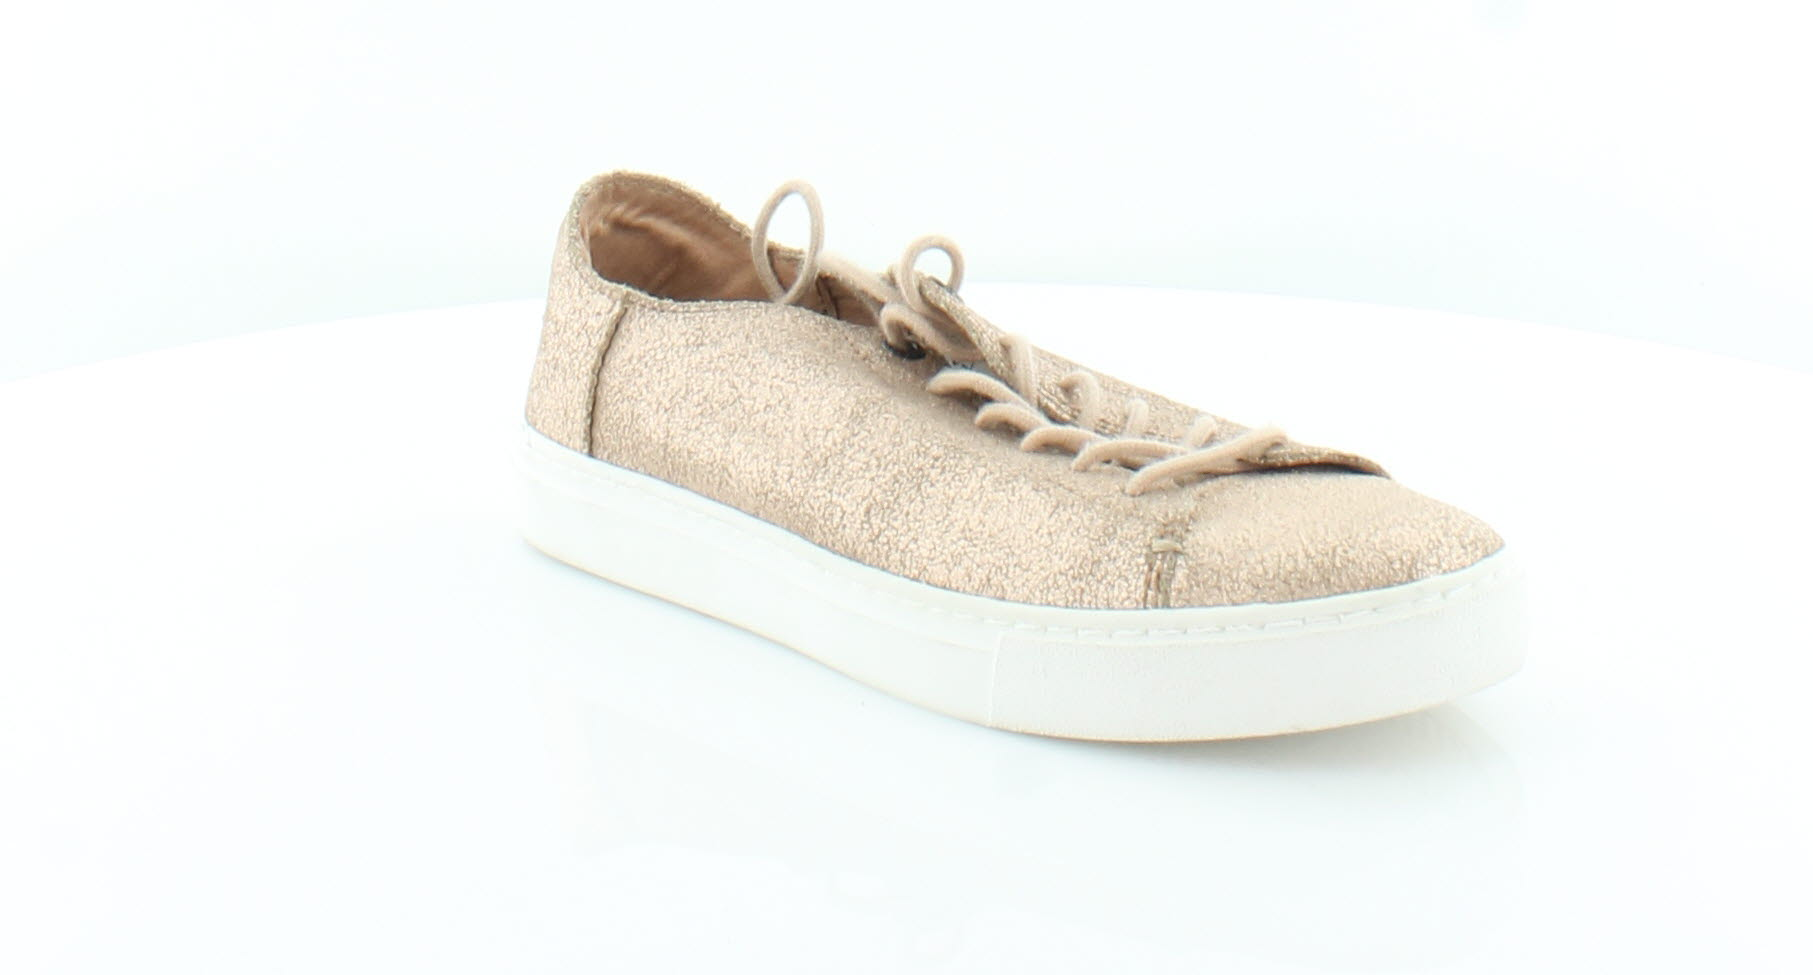 462046cbd40 TOMS Classic Lenox Gold Womens Shoes Size 6.5 M Fashion Sneakers MSRP  89